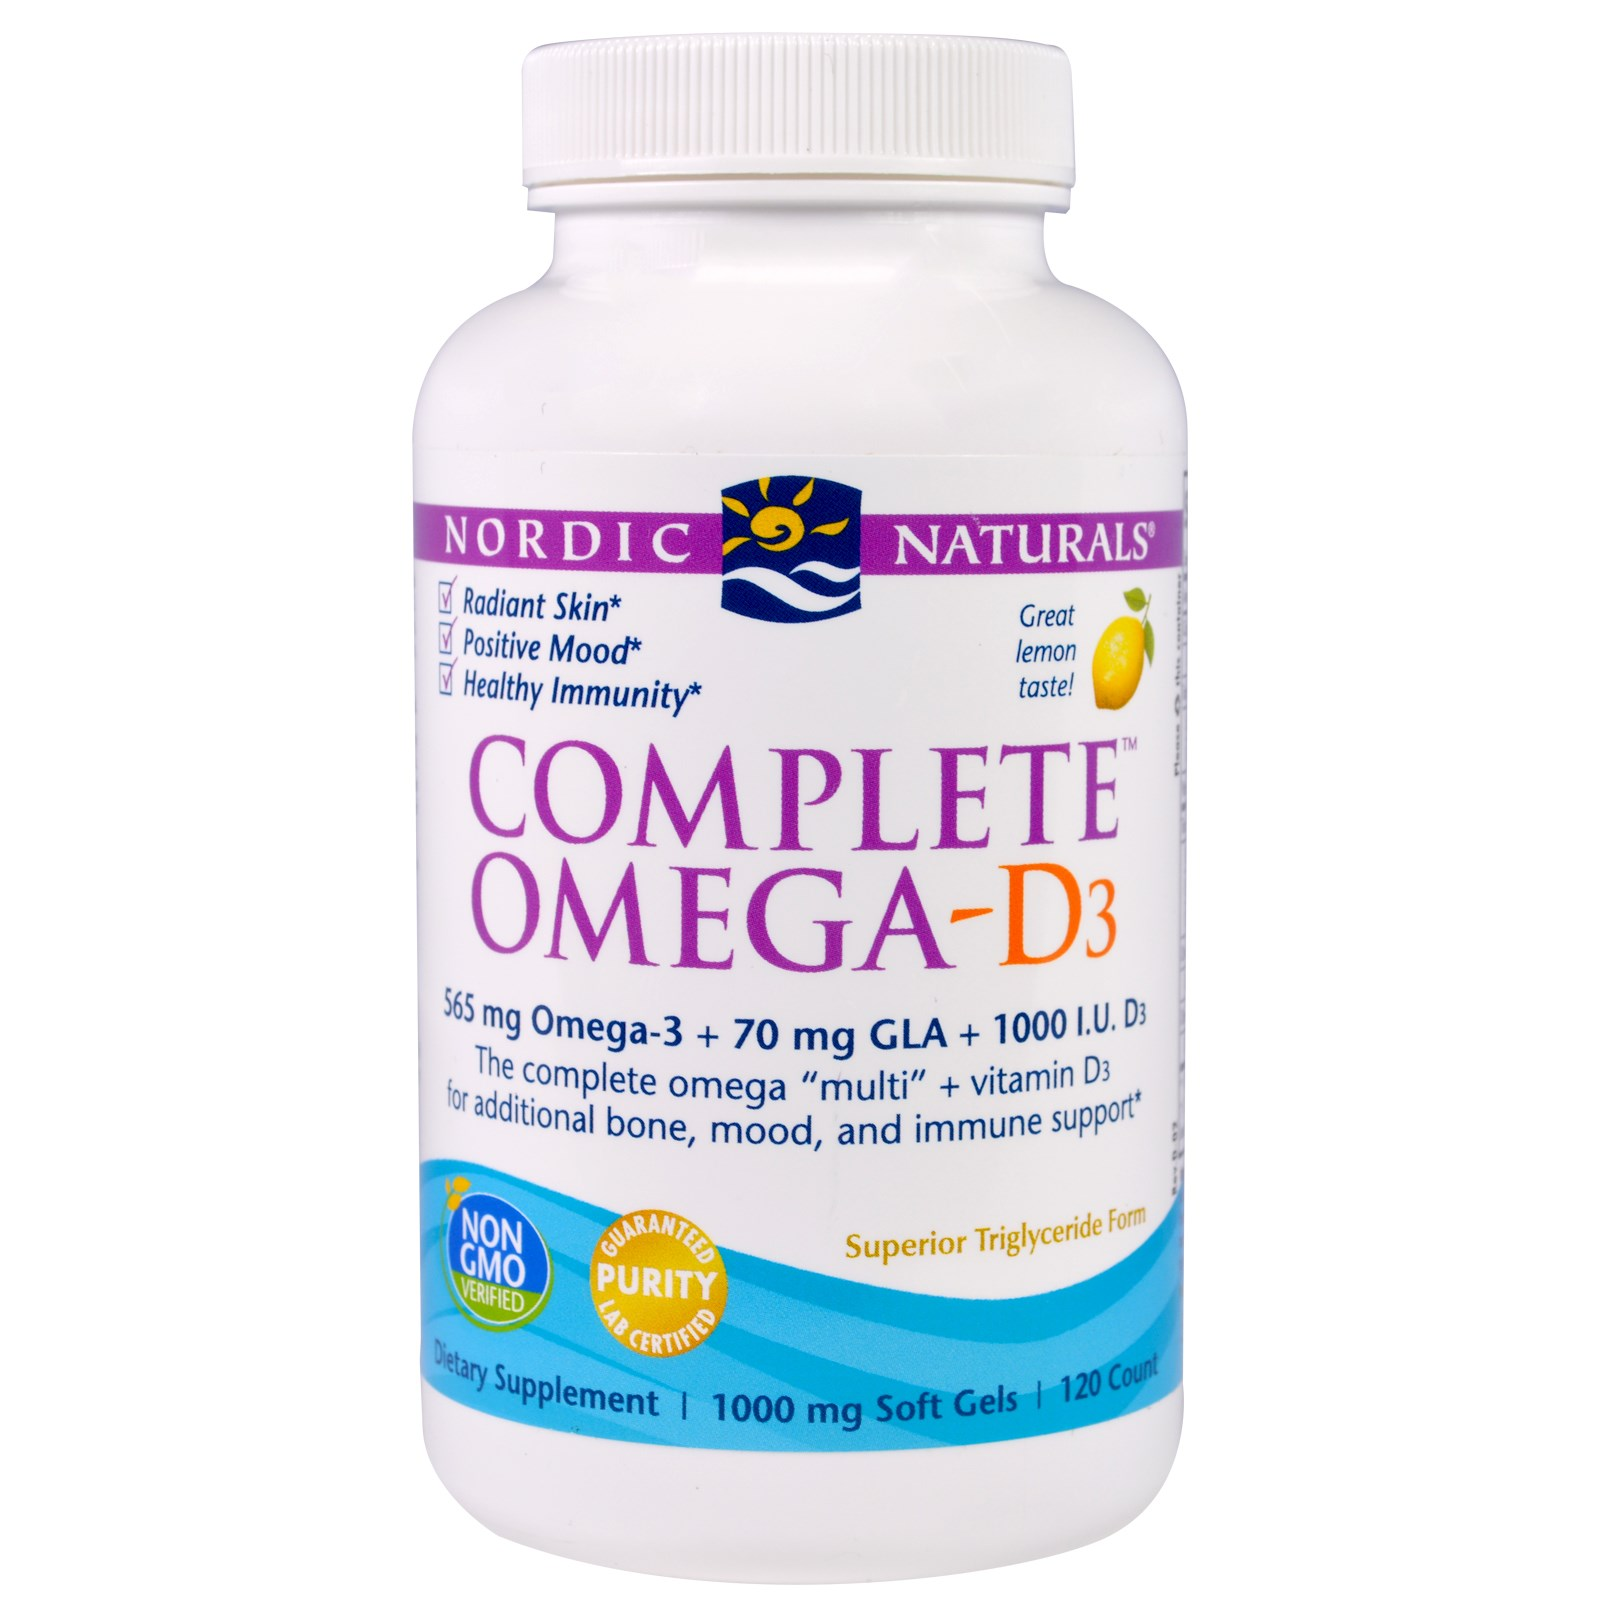 Nordic Naturals, Complete Омега D3, вкус лимона, 1000 мг, 120 капсул